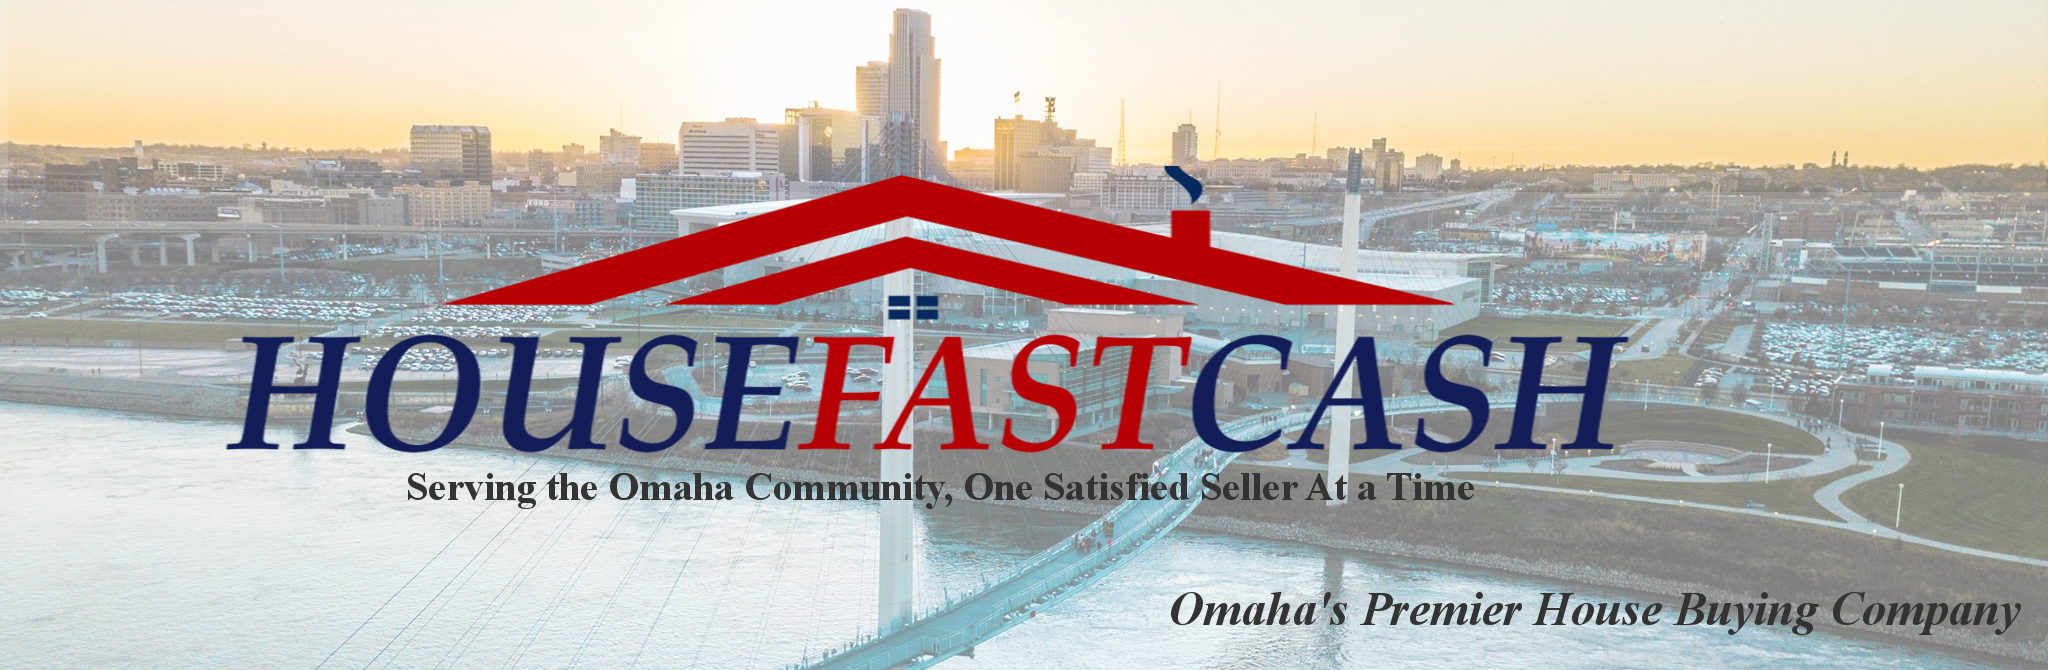 HouseFastCash OMaha home buyer